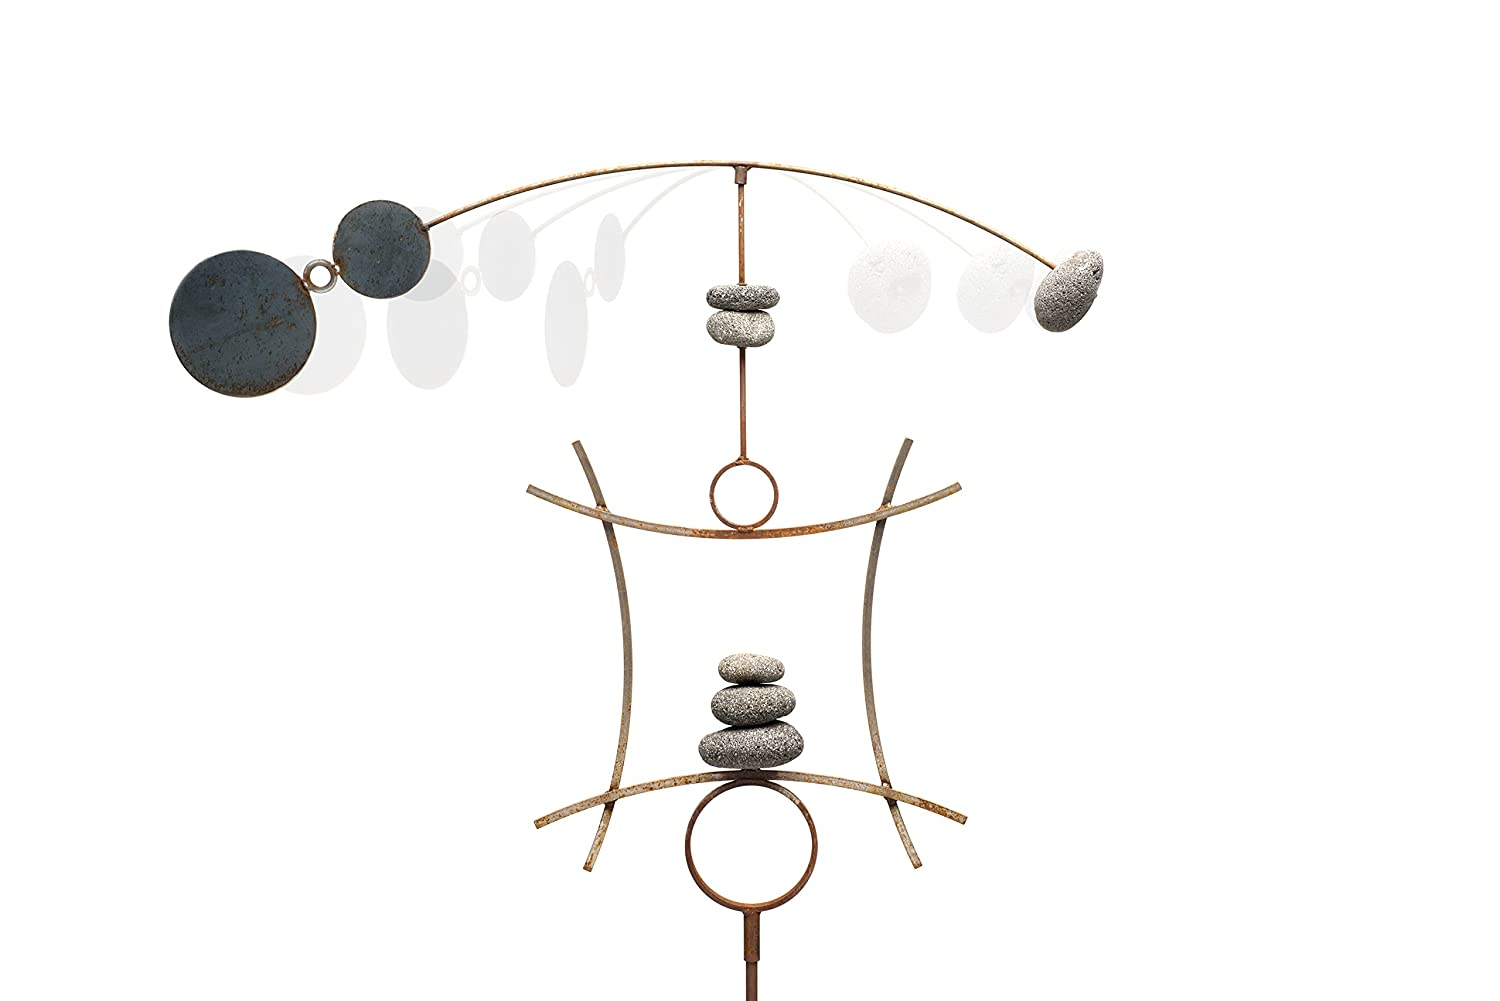 Zen Garden Spinner Kinetic Wind Sculpture   Balanced Arch Yard Decor With Rock Cairn And Stake   Relaxing Metal Art Wind Vane   Large   Handmade In The USA